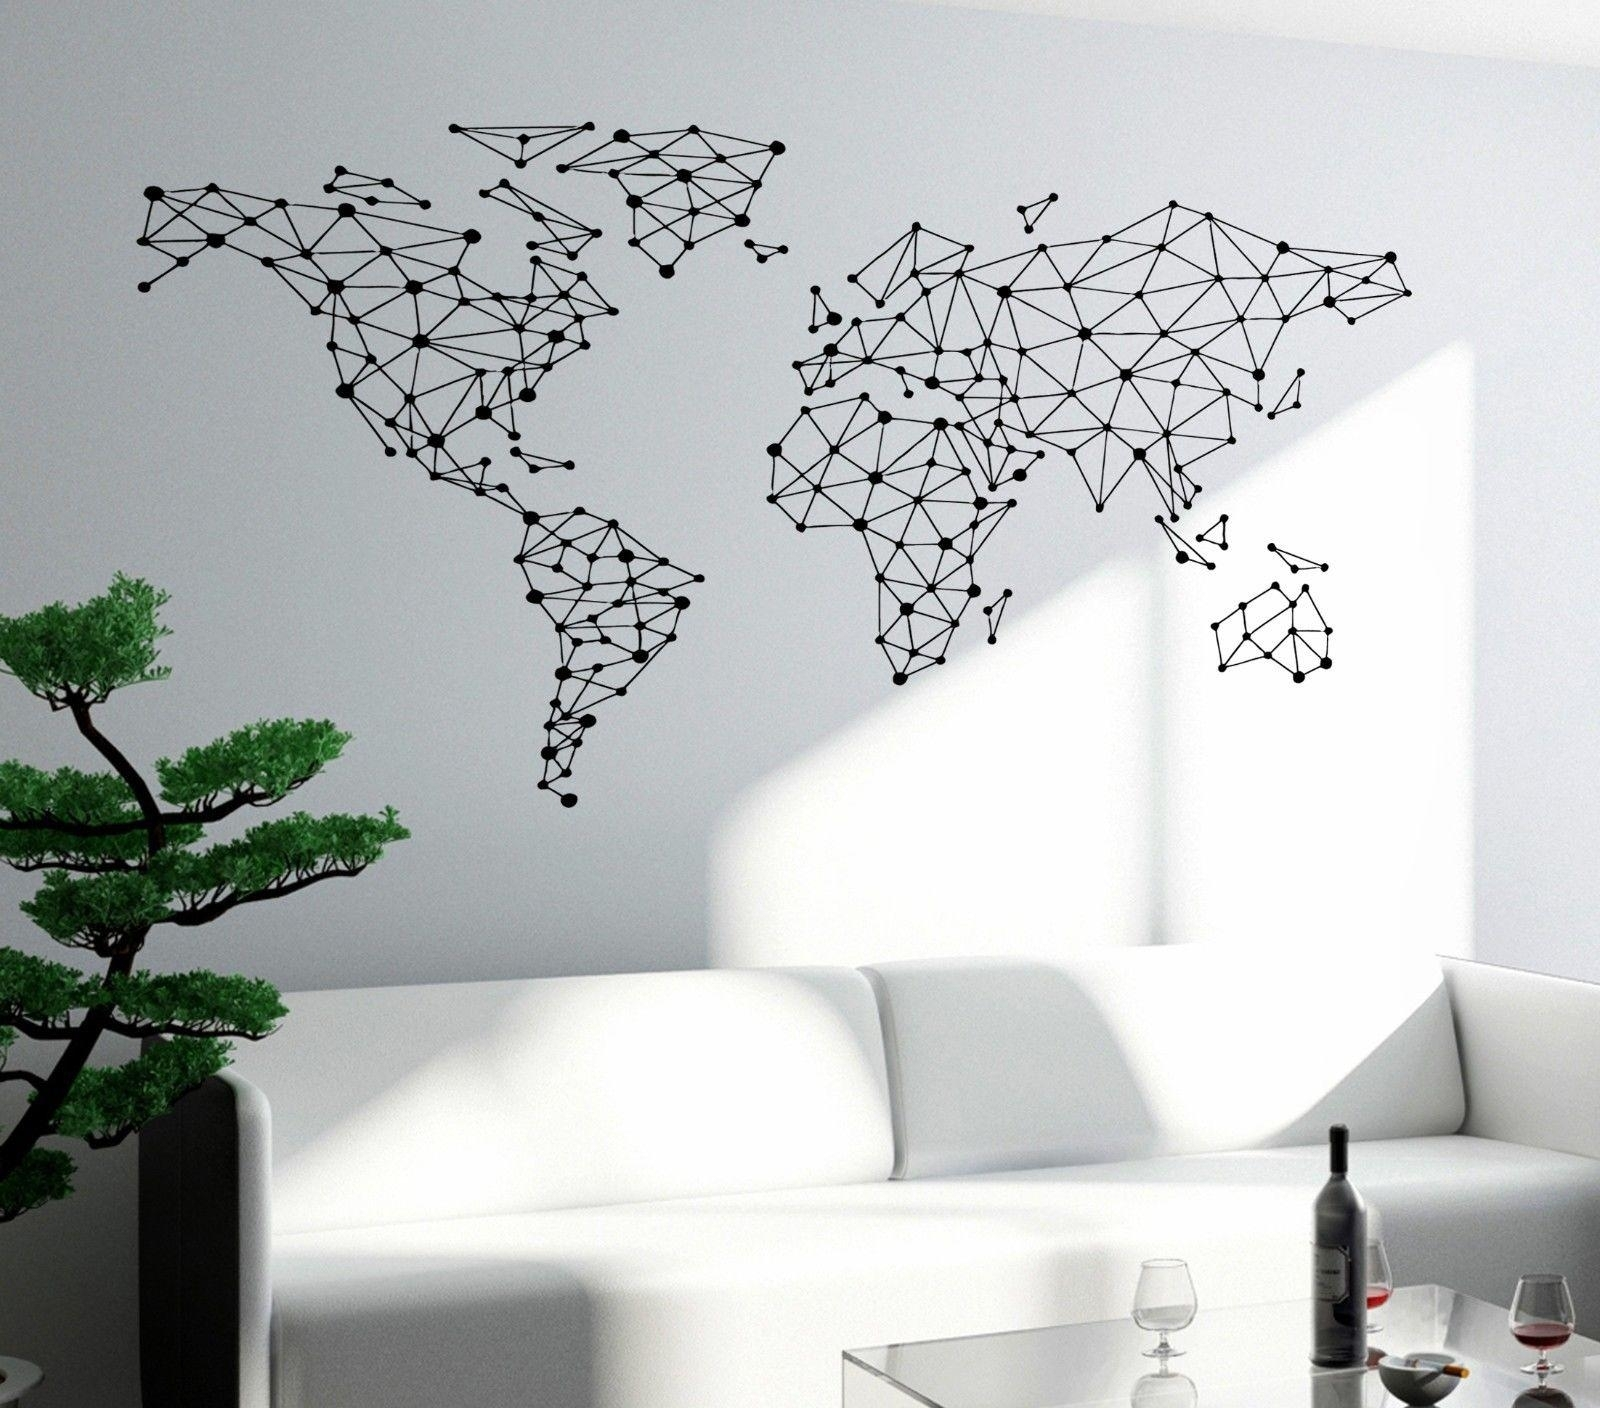 World Map Wall Art Amazon : Sterlingz Depot - Simple Way To Diy in Diy World Map Wall Art (Image 19 of 20)